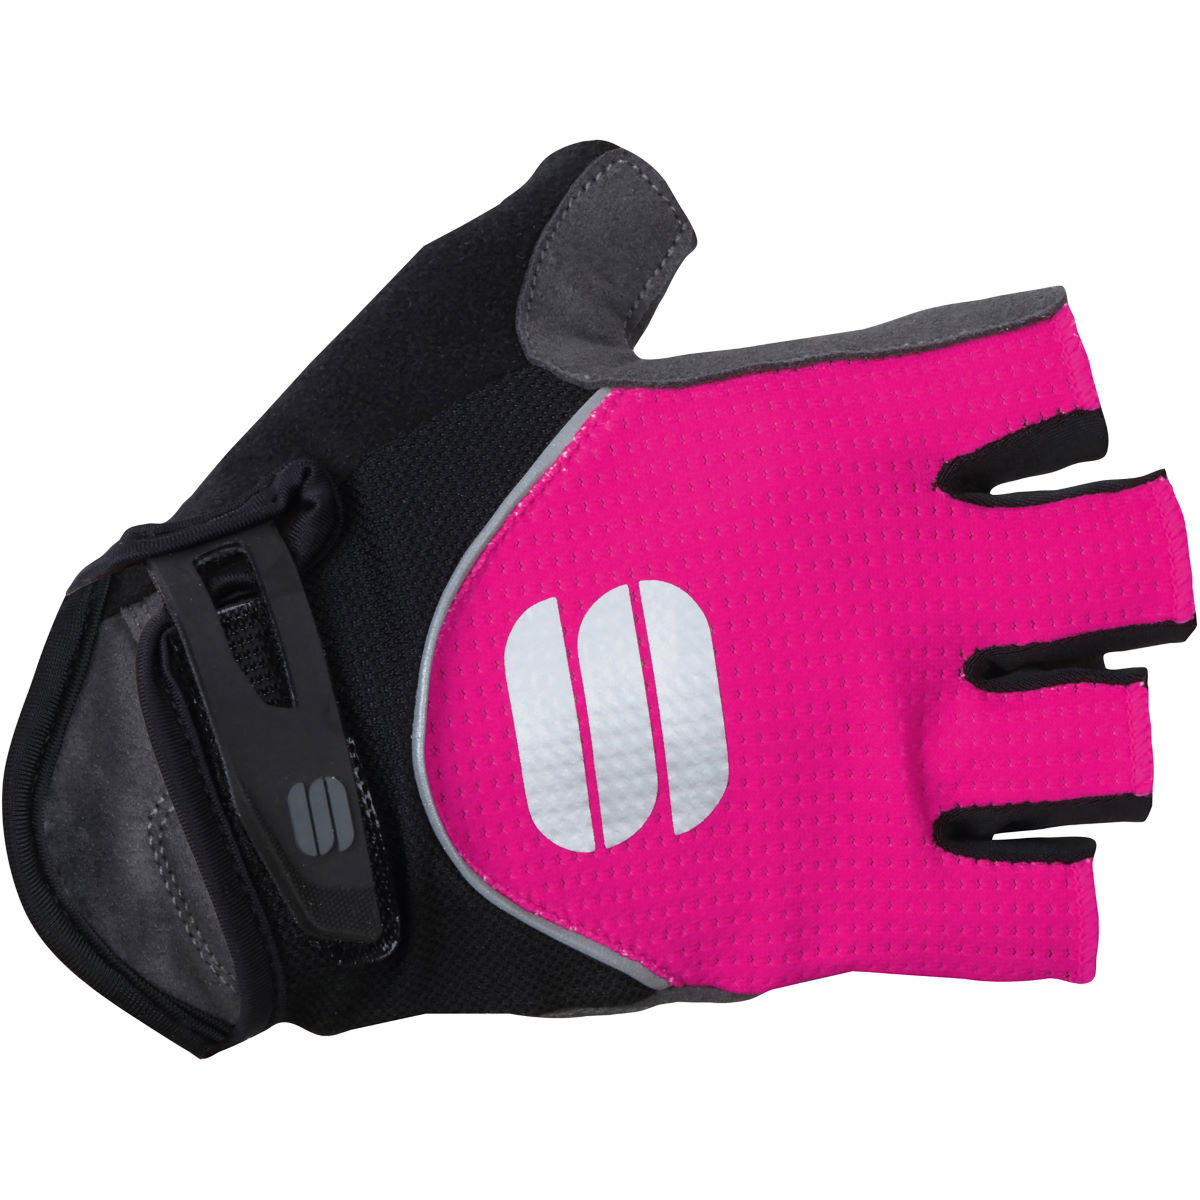 Sportful Womens Neo Cycling Gloves - M Pink/black  Gloves